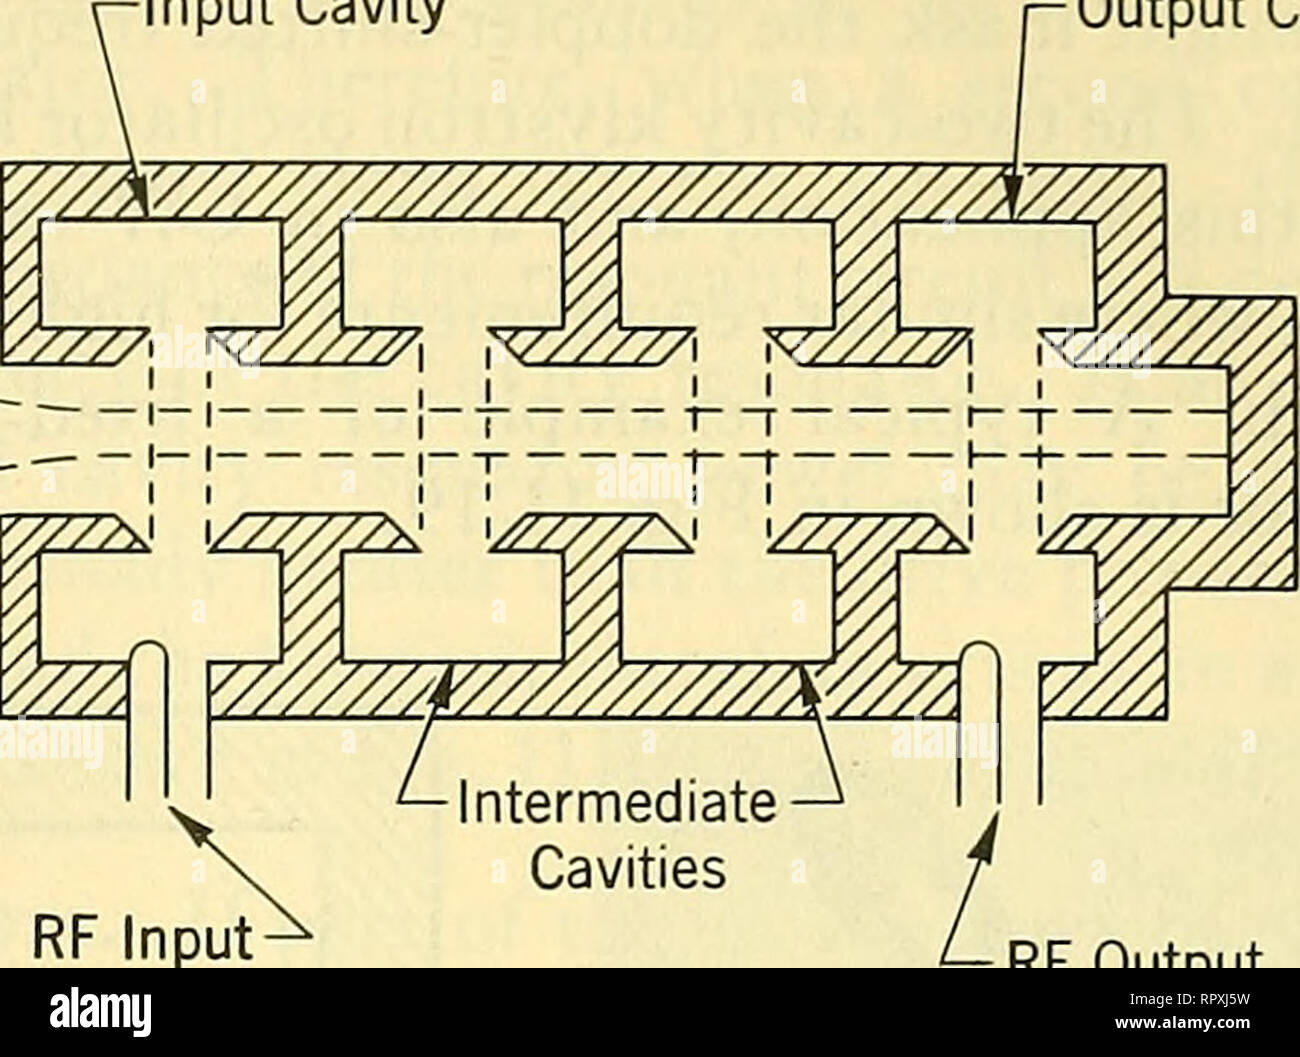 hight resolution of  schematic diagram rf amp microwave on microwave fuse microwave wiring diagram microwave fan diagrams